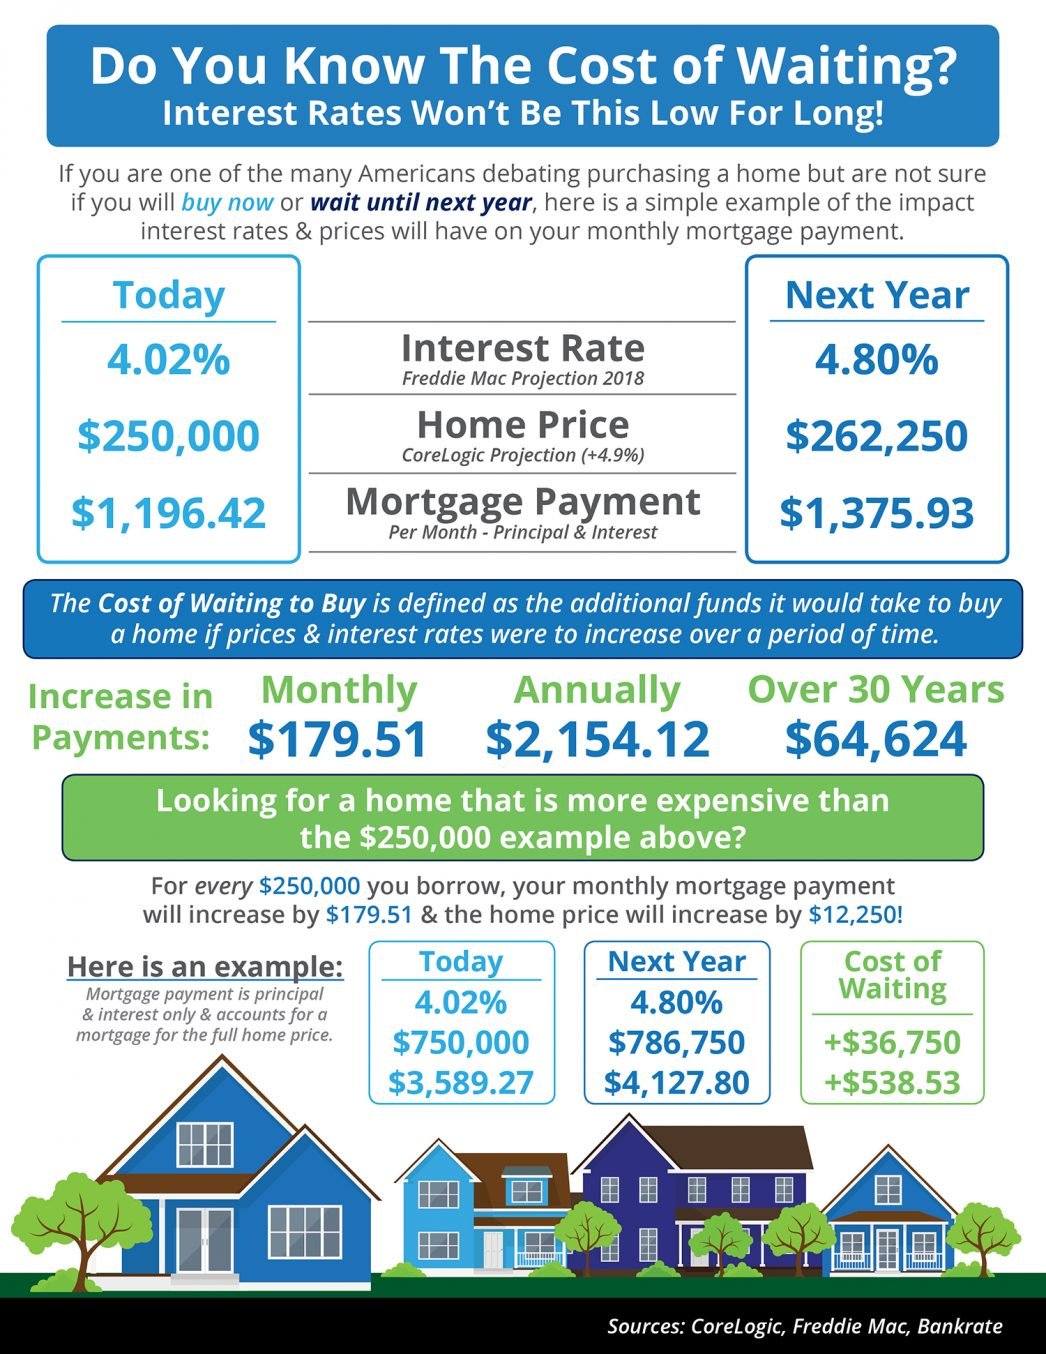 Infographic on the cost of waiting to buy a home